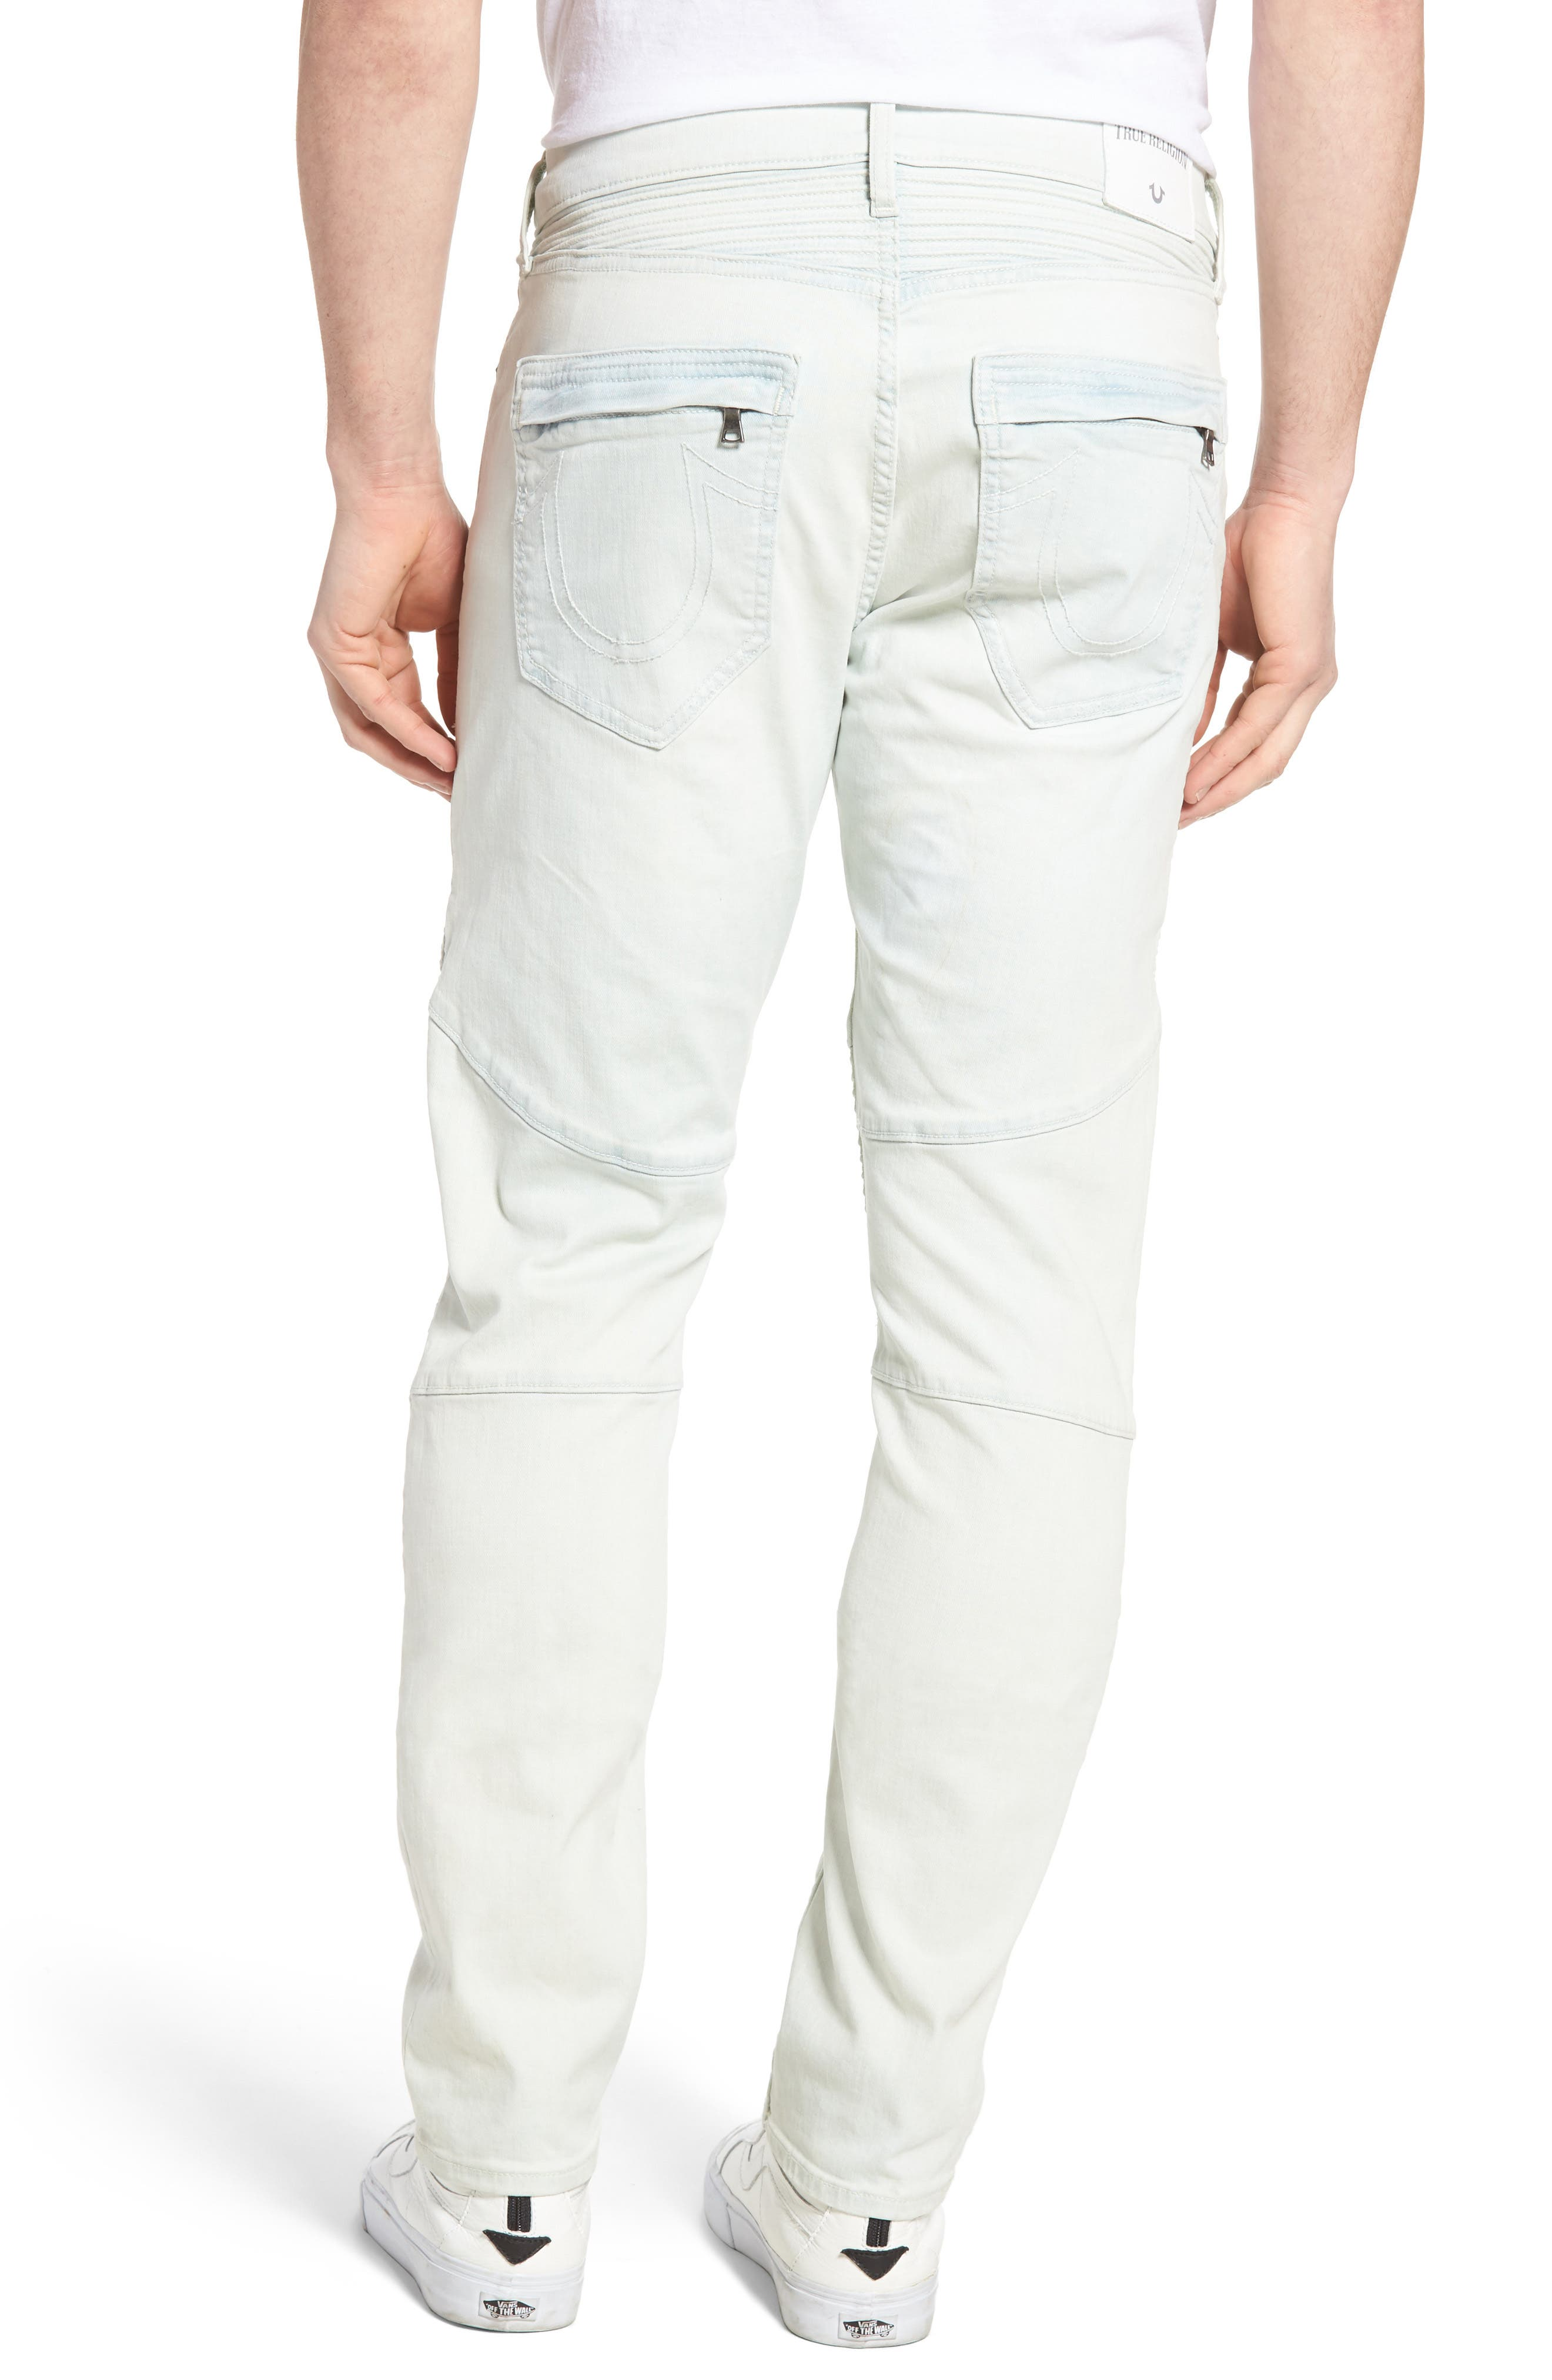 Rocco Skinny Fit Moto Jeans,                             Alternate thumbnail 2, color,                             401